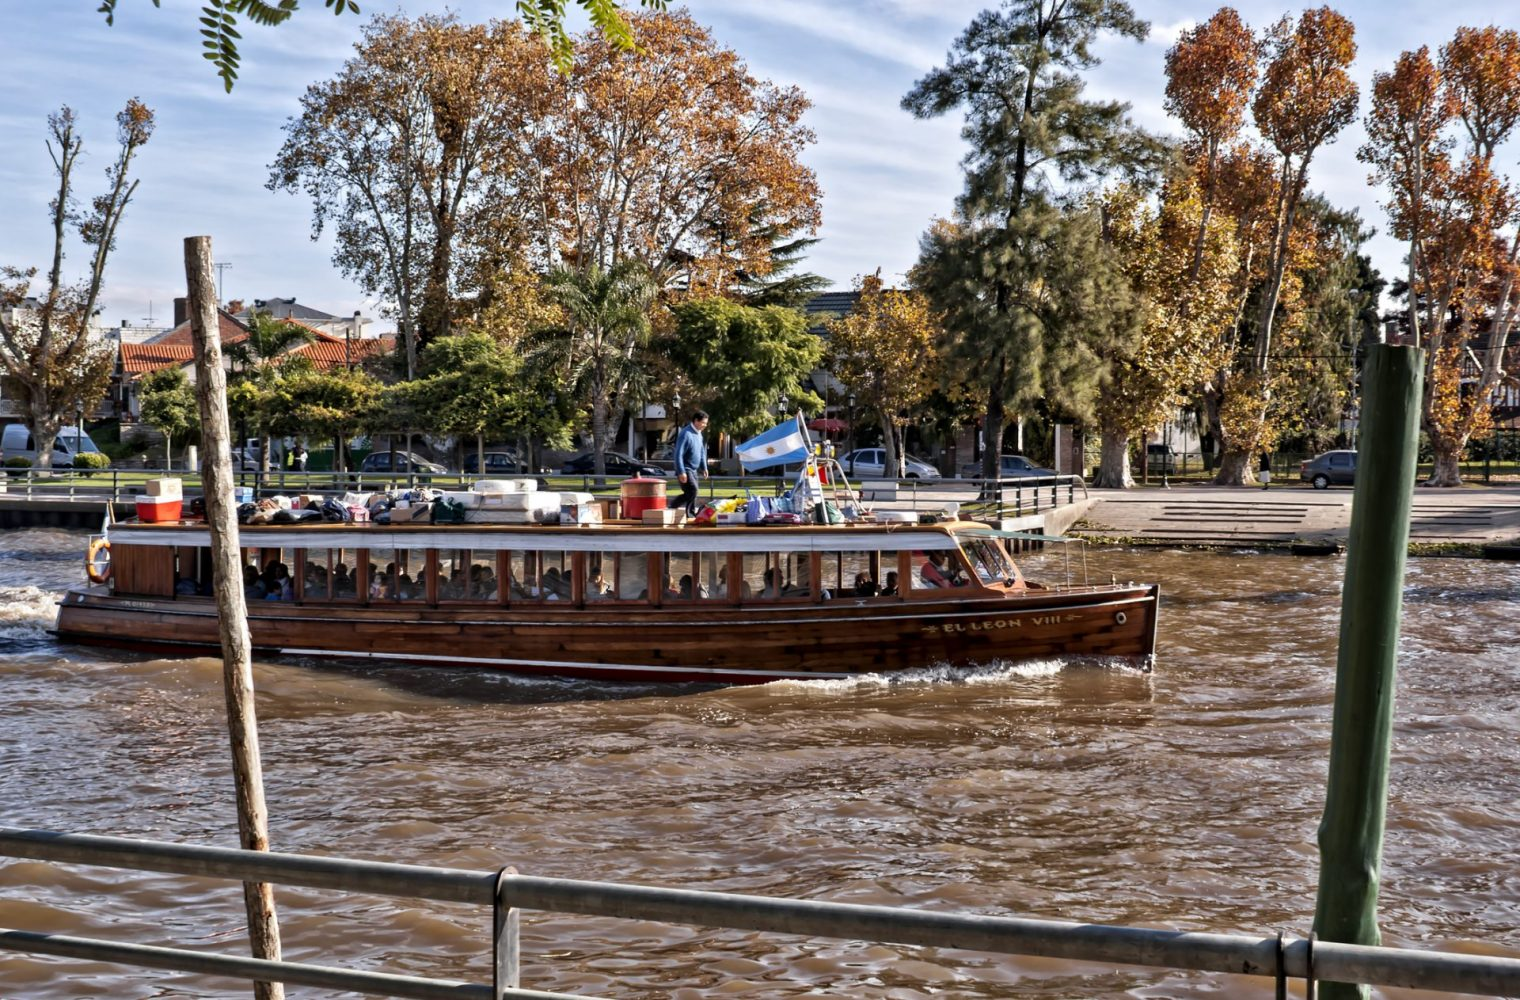 A wooden passenger boat is crossing the river with baggages, flag and a person on roof. Sky with clouds, in autumn. Taken in Puerto de Frutos, is a small dock on the Lujan river, where has fruit market, region's craftwork , basketry, typical argentine food, among other things. Now, restaured, also is a touristic place for appreciate the culture of this region. On Delta of Tigre city , Buenos Aires province, Argentina.